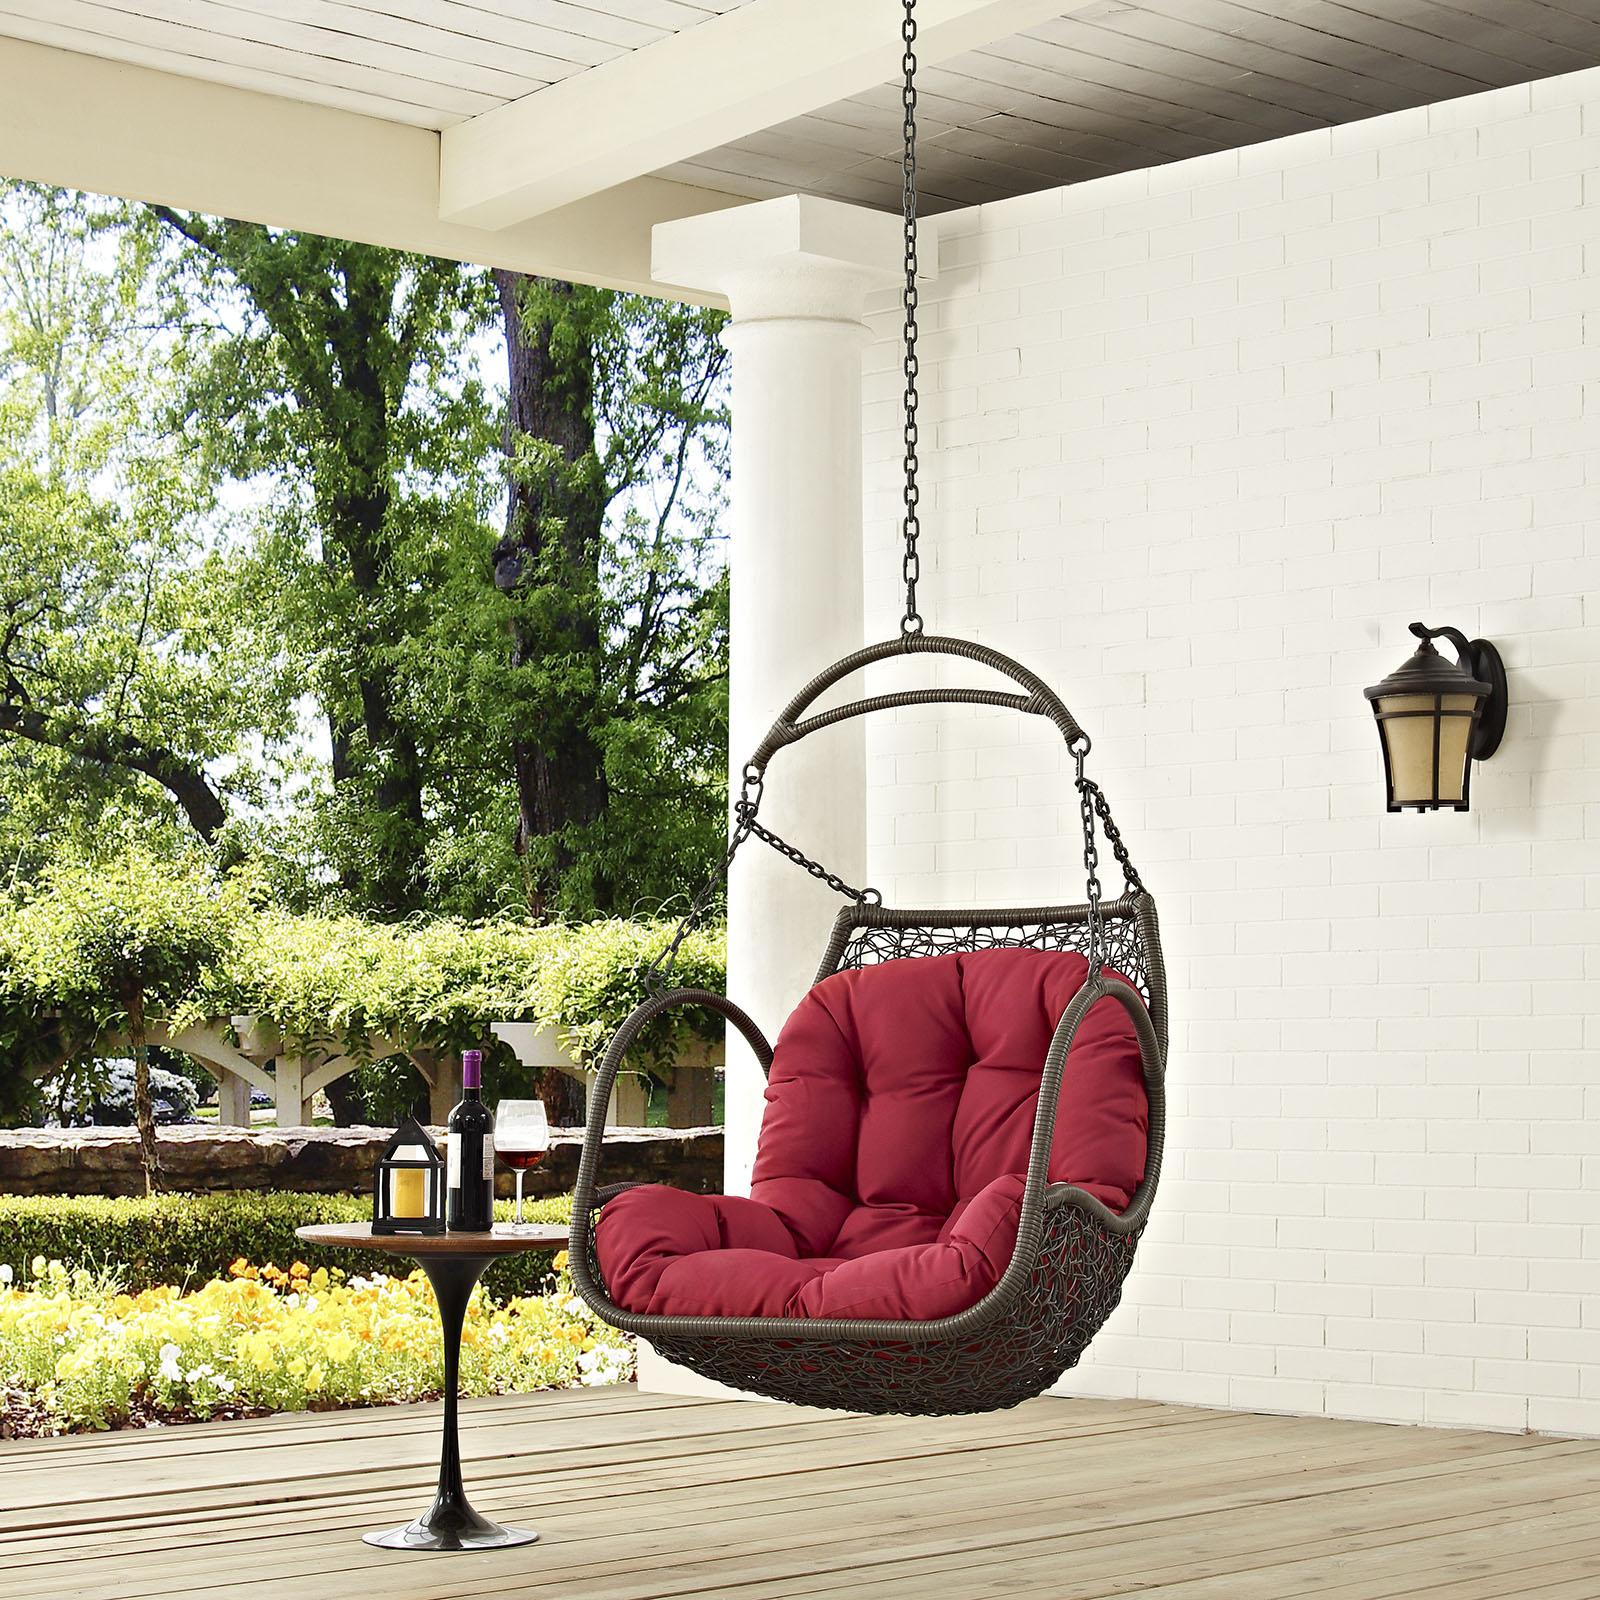 Patio Swing Chair Without Stand EEI-2659 - Patio Furniture Co